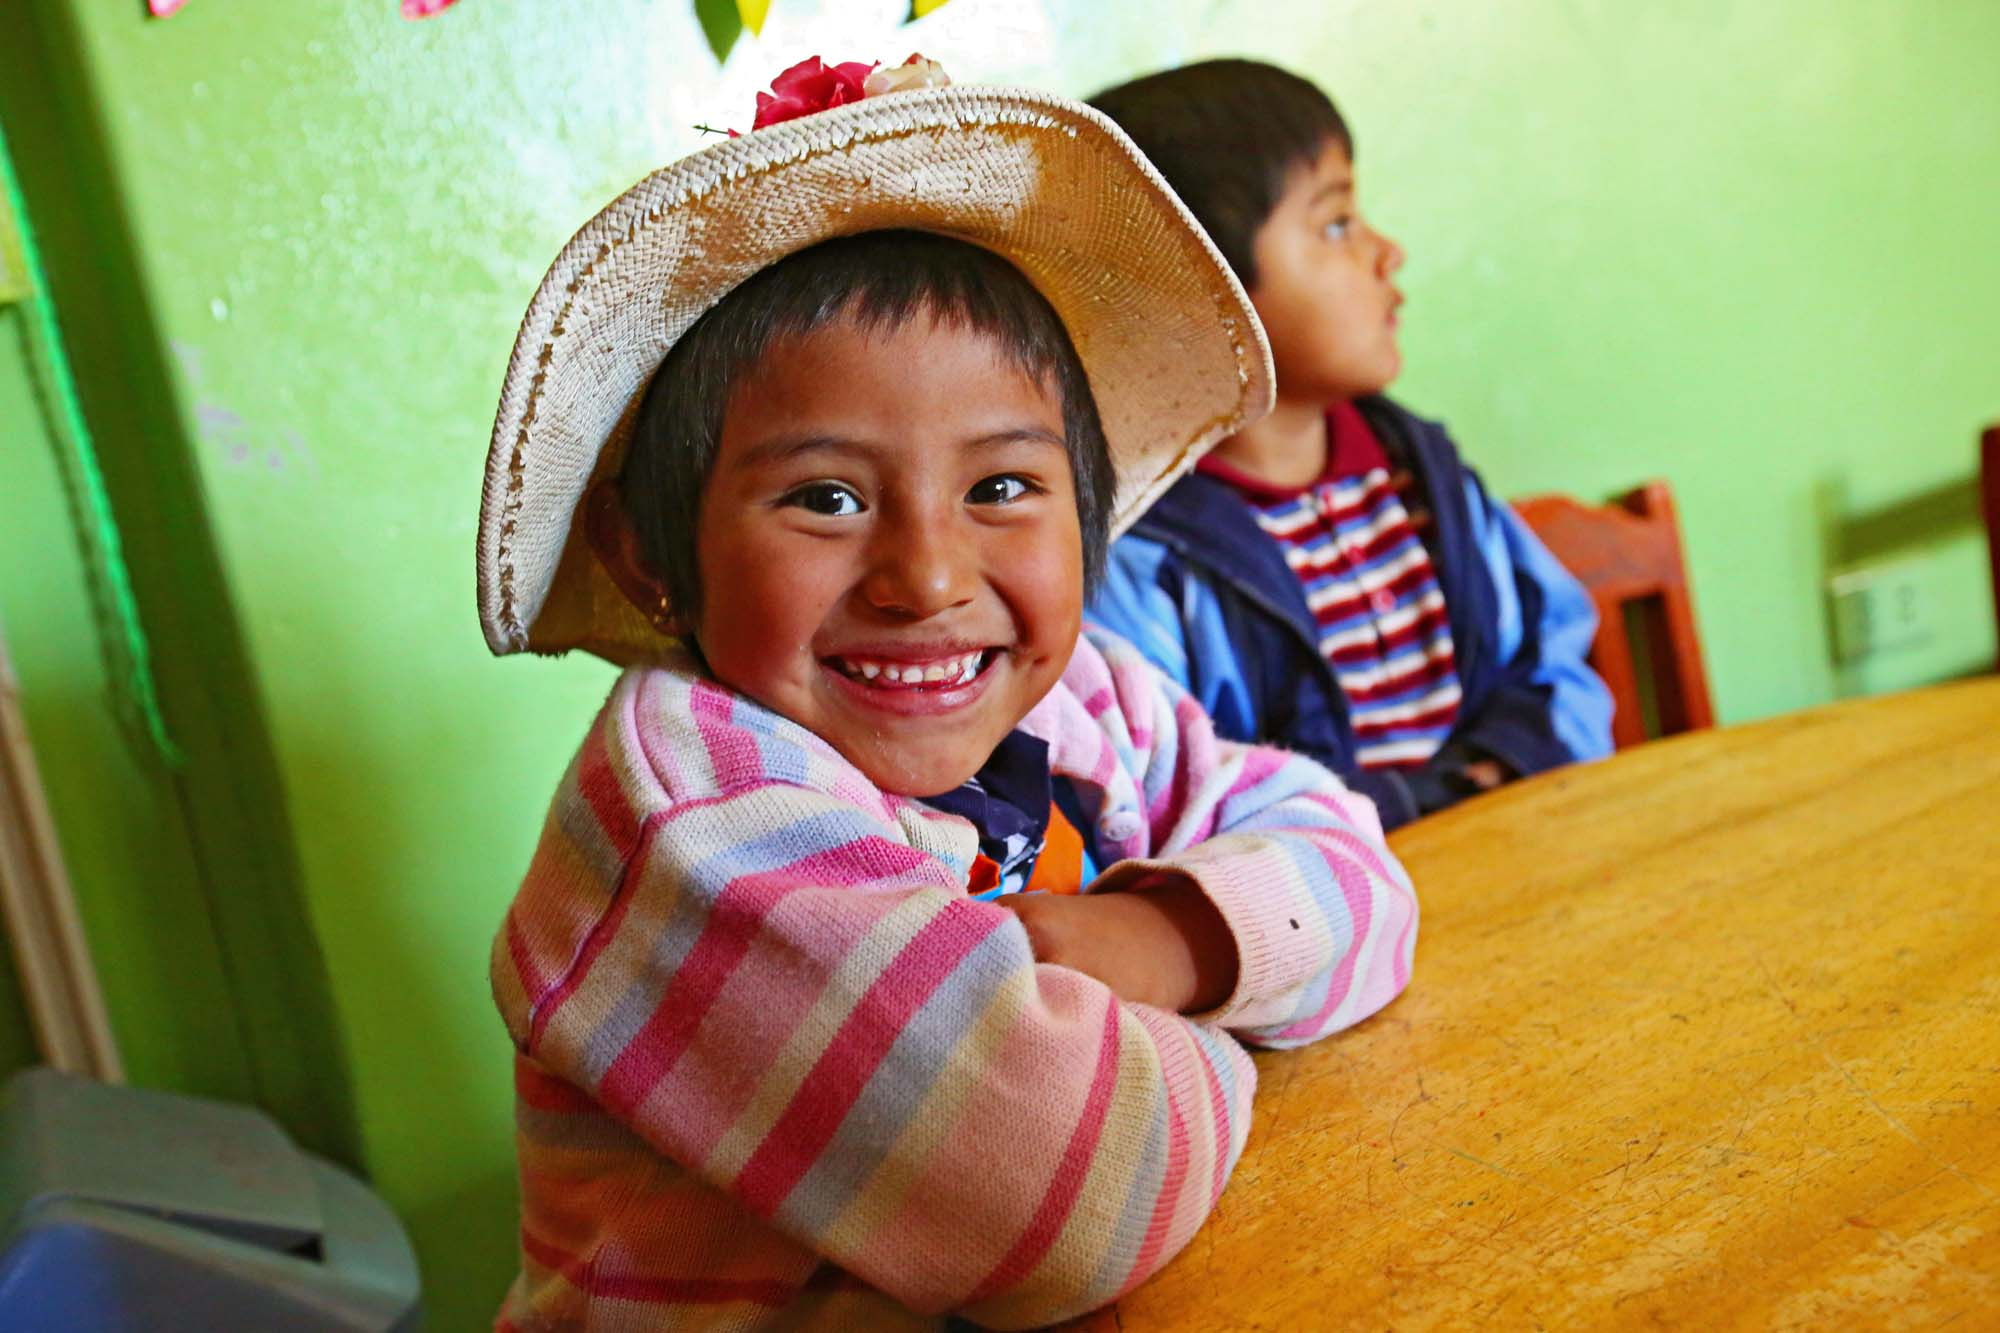 A young girl in a straw hat smiles